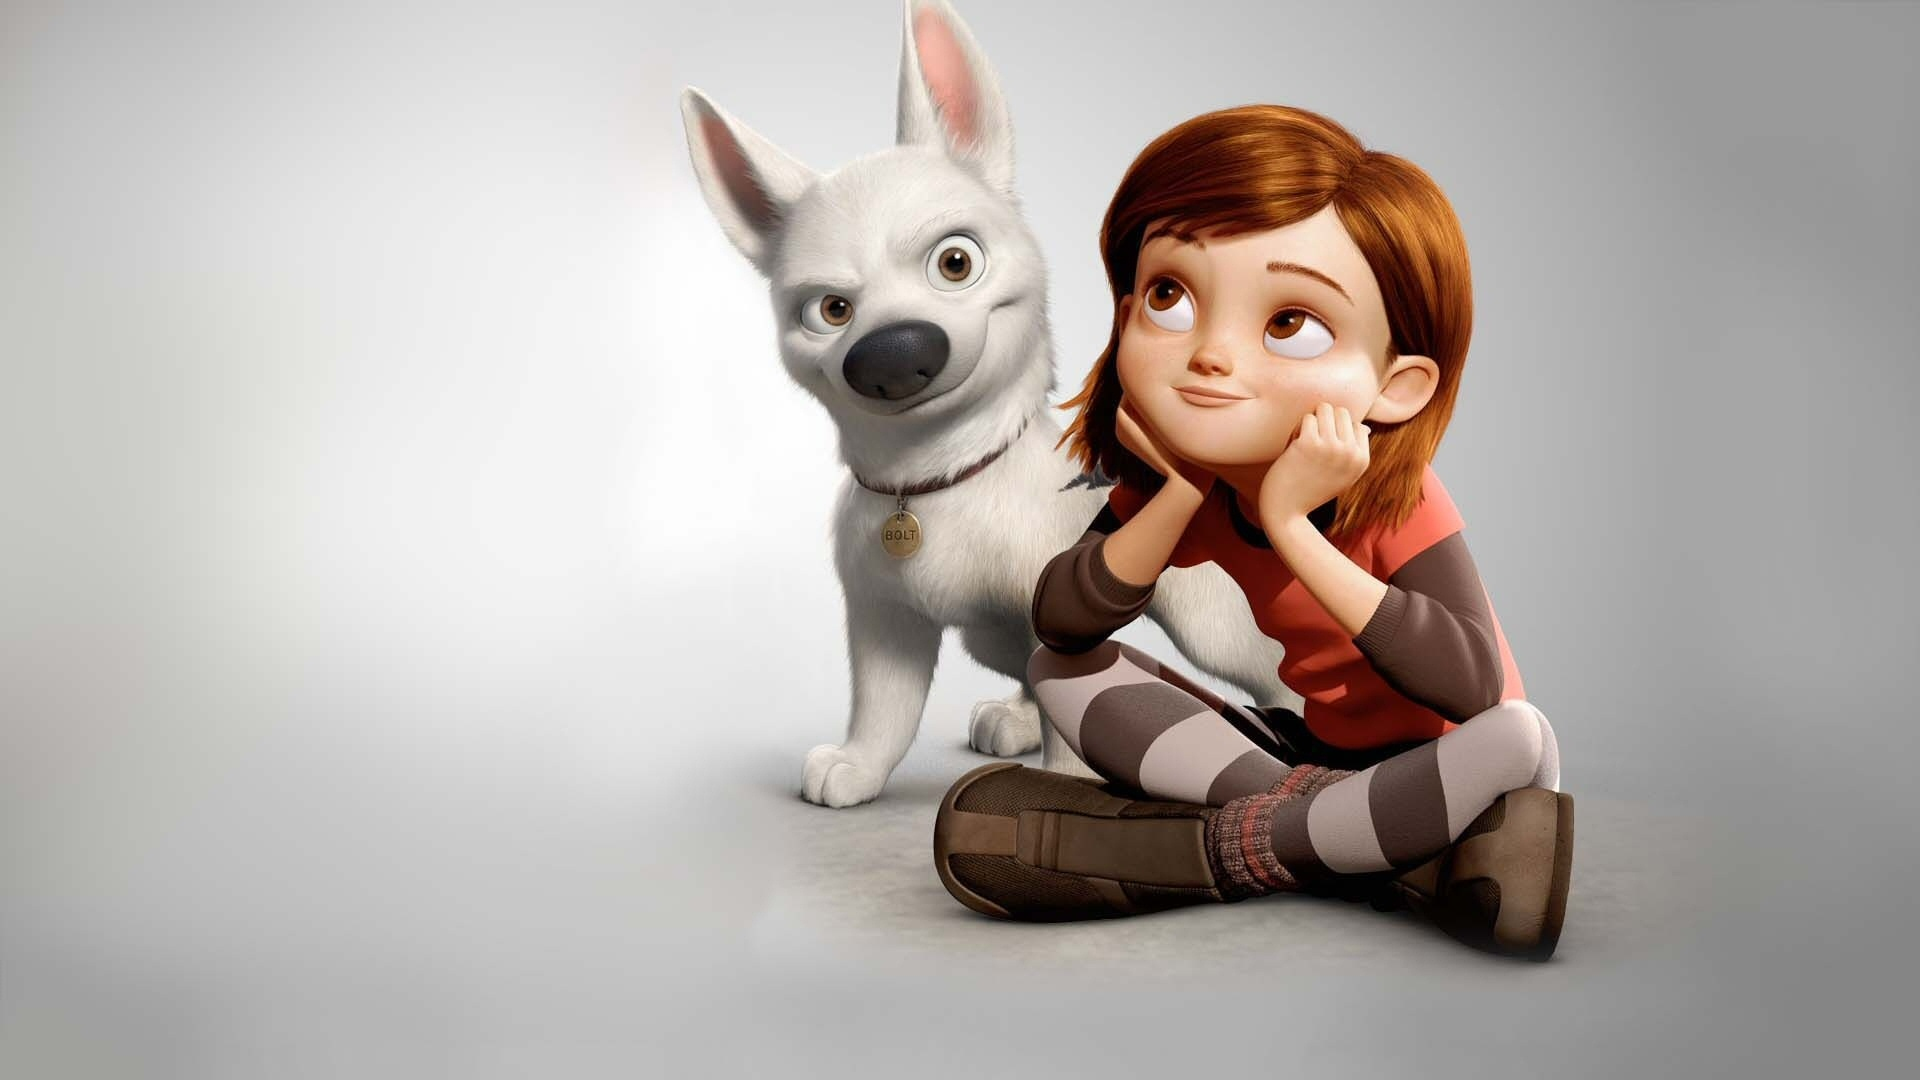 Cute Love Quotes Wallpapers For Him Download Animation Movies Hd Wallpapers Gallery